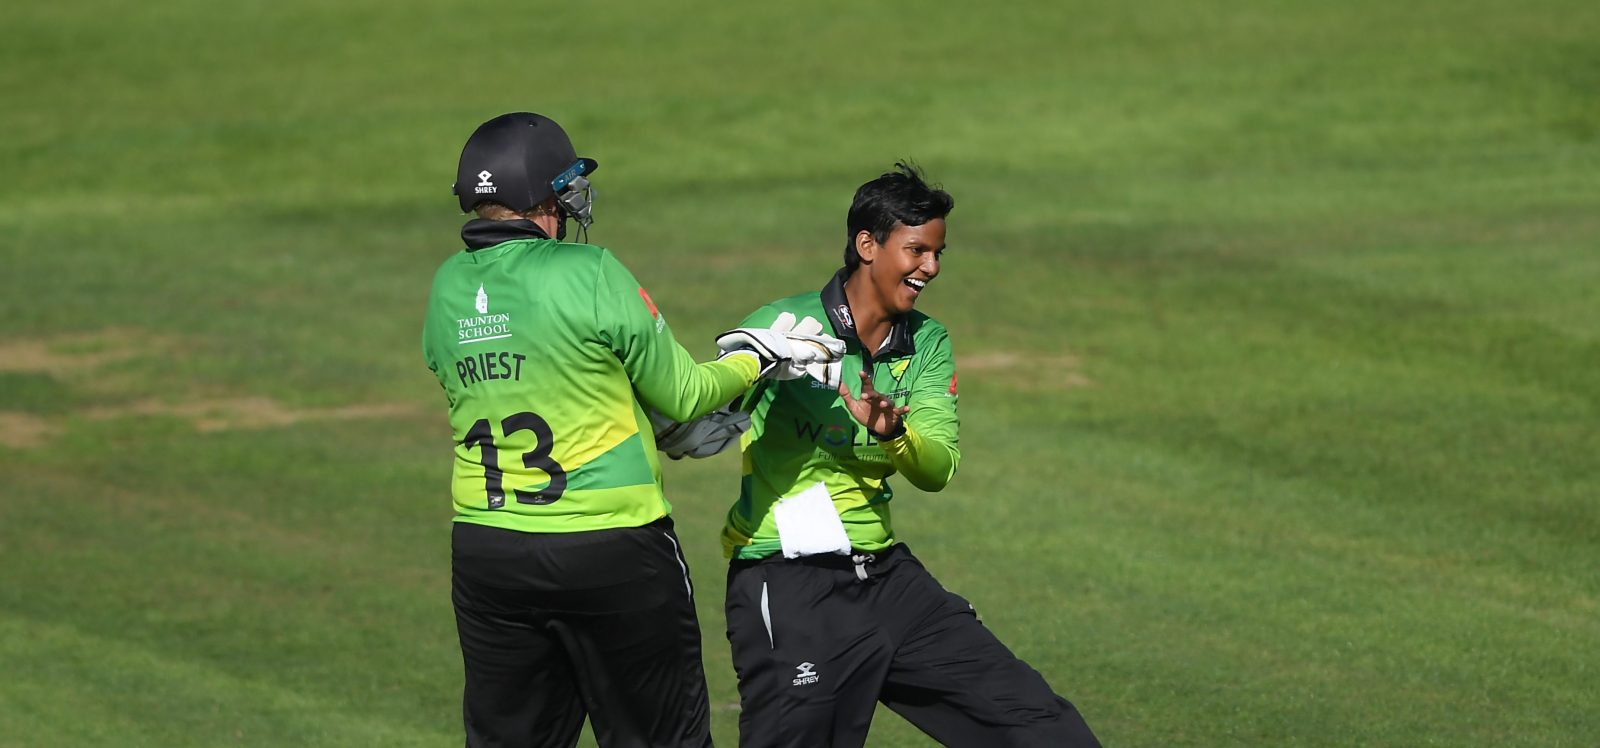 Deepti Sharma celebrates a wicket. ©Getty Images